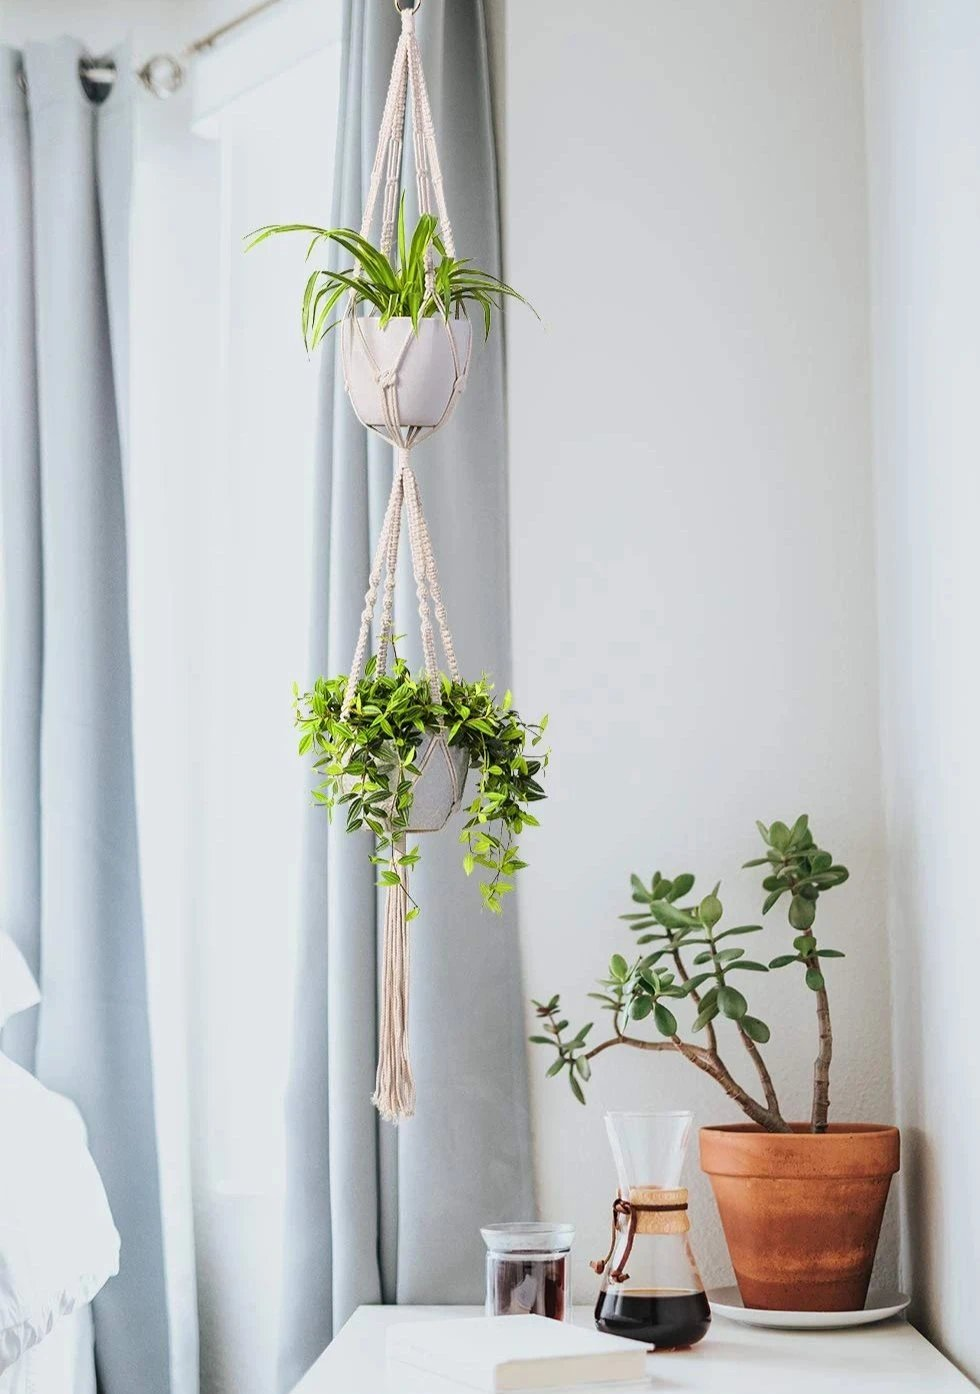 Two Tier Macrame Cotton Plant Hanger, 1 Pack